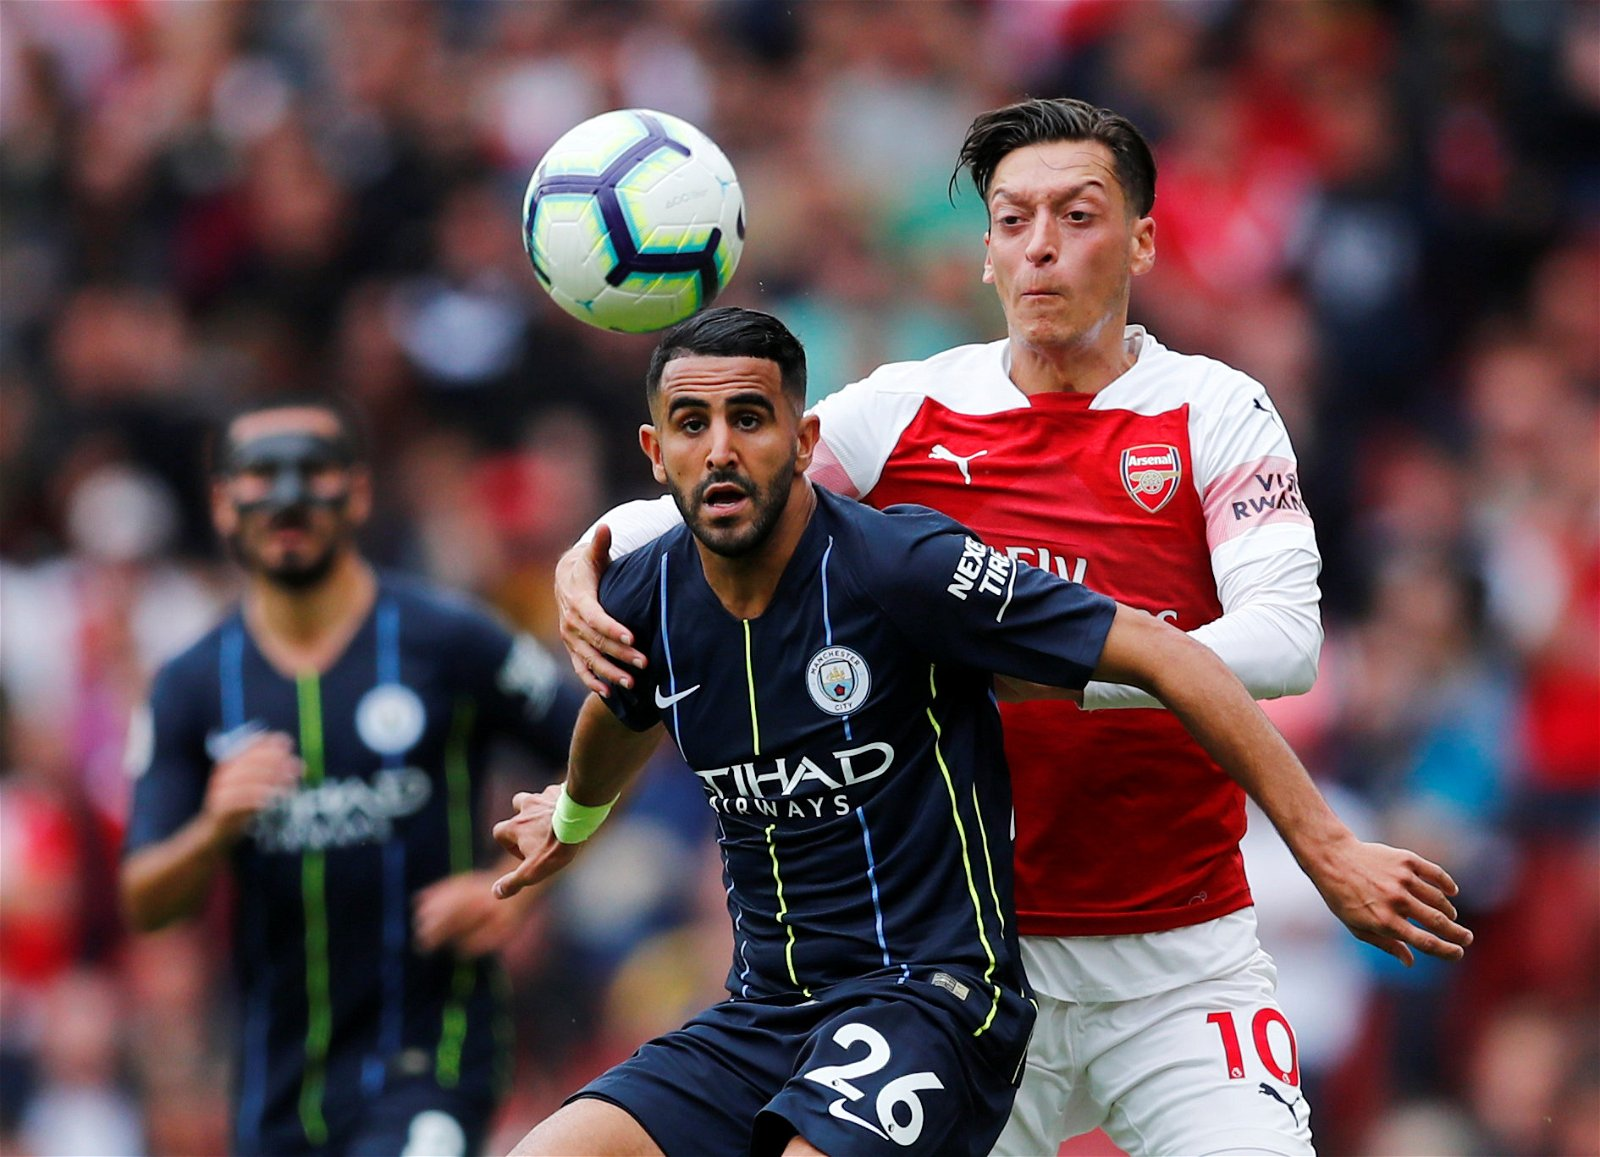 Riyad Mahrez makes his Premier League debut for Man City v Arsenal